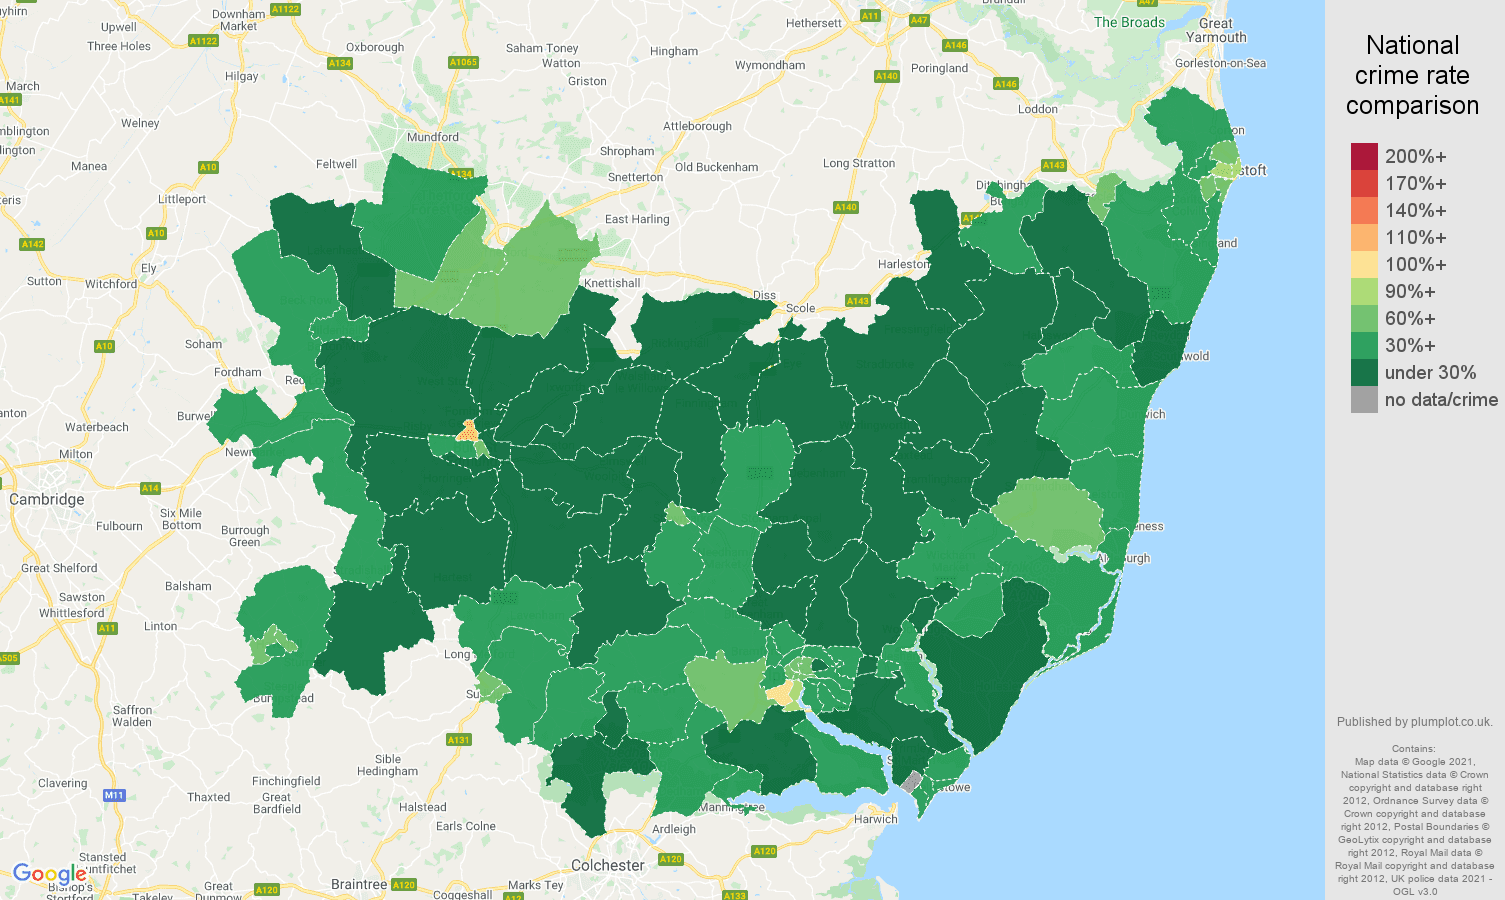 Suffolk antisocial behaviour crime rate comparison map